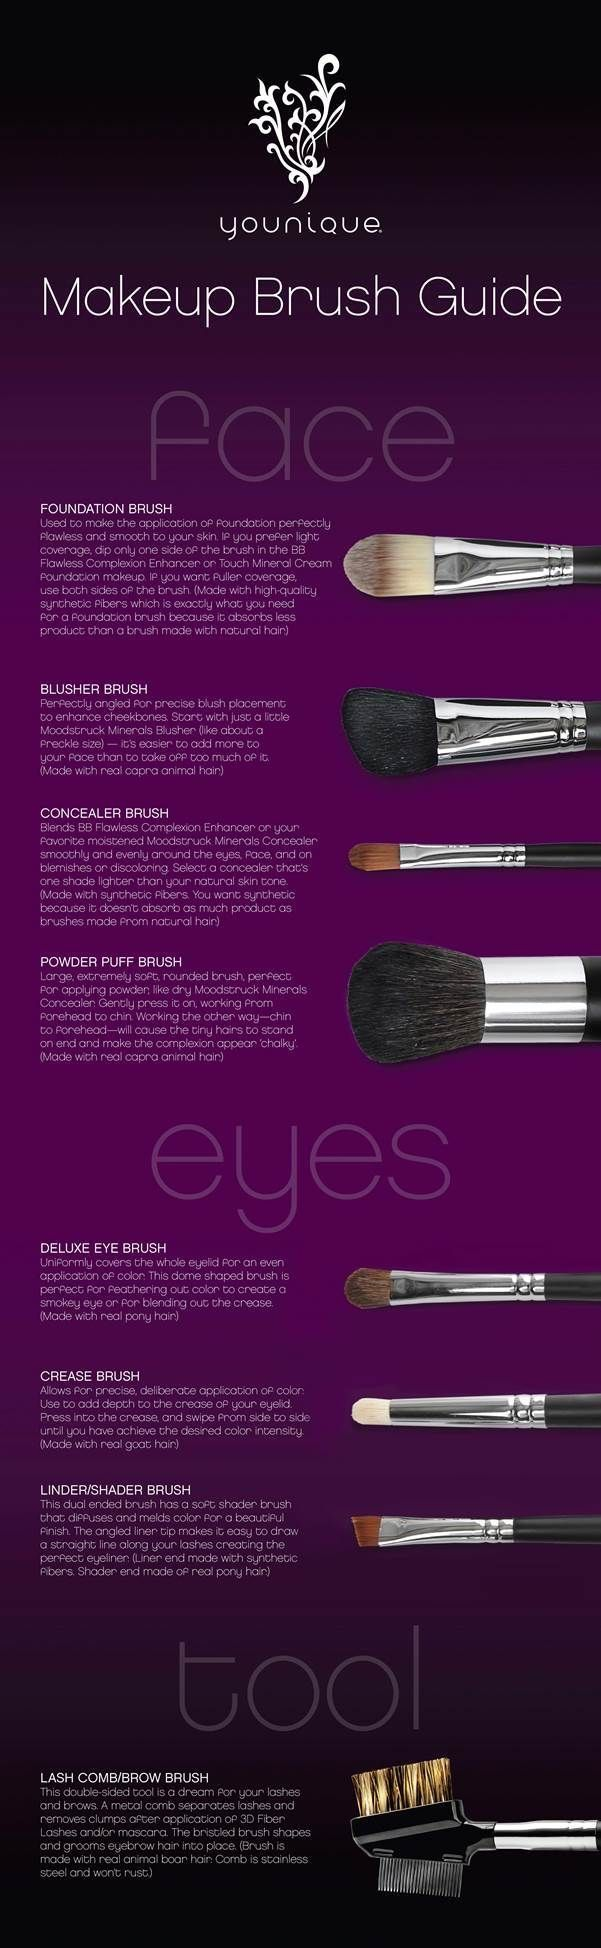 Brushes make all of the difference in makeup application. Younique's Blusher Brush is one of my favorites! The angle of the brush is perfect for blush application and contouring in just the right places on your face.